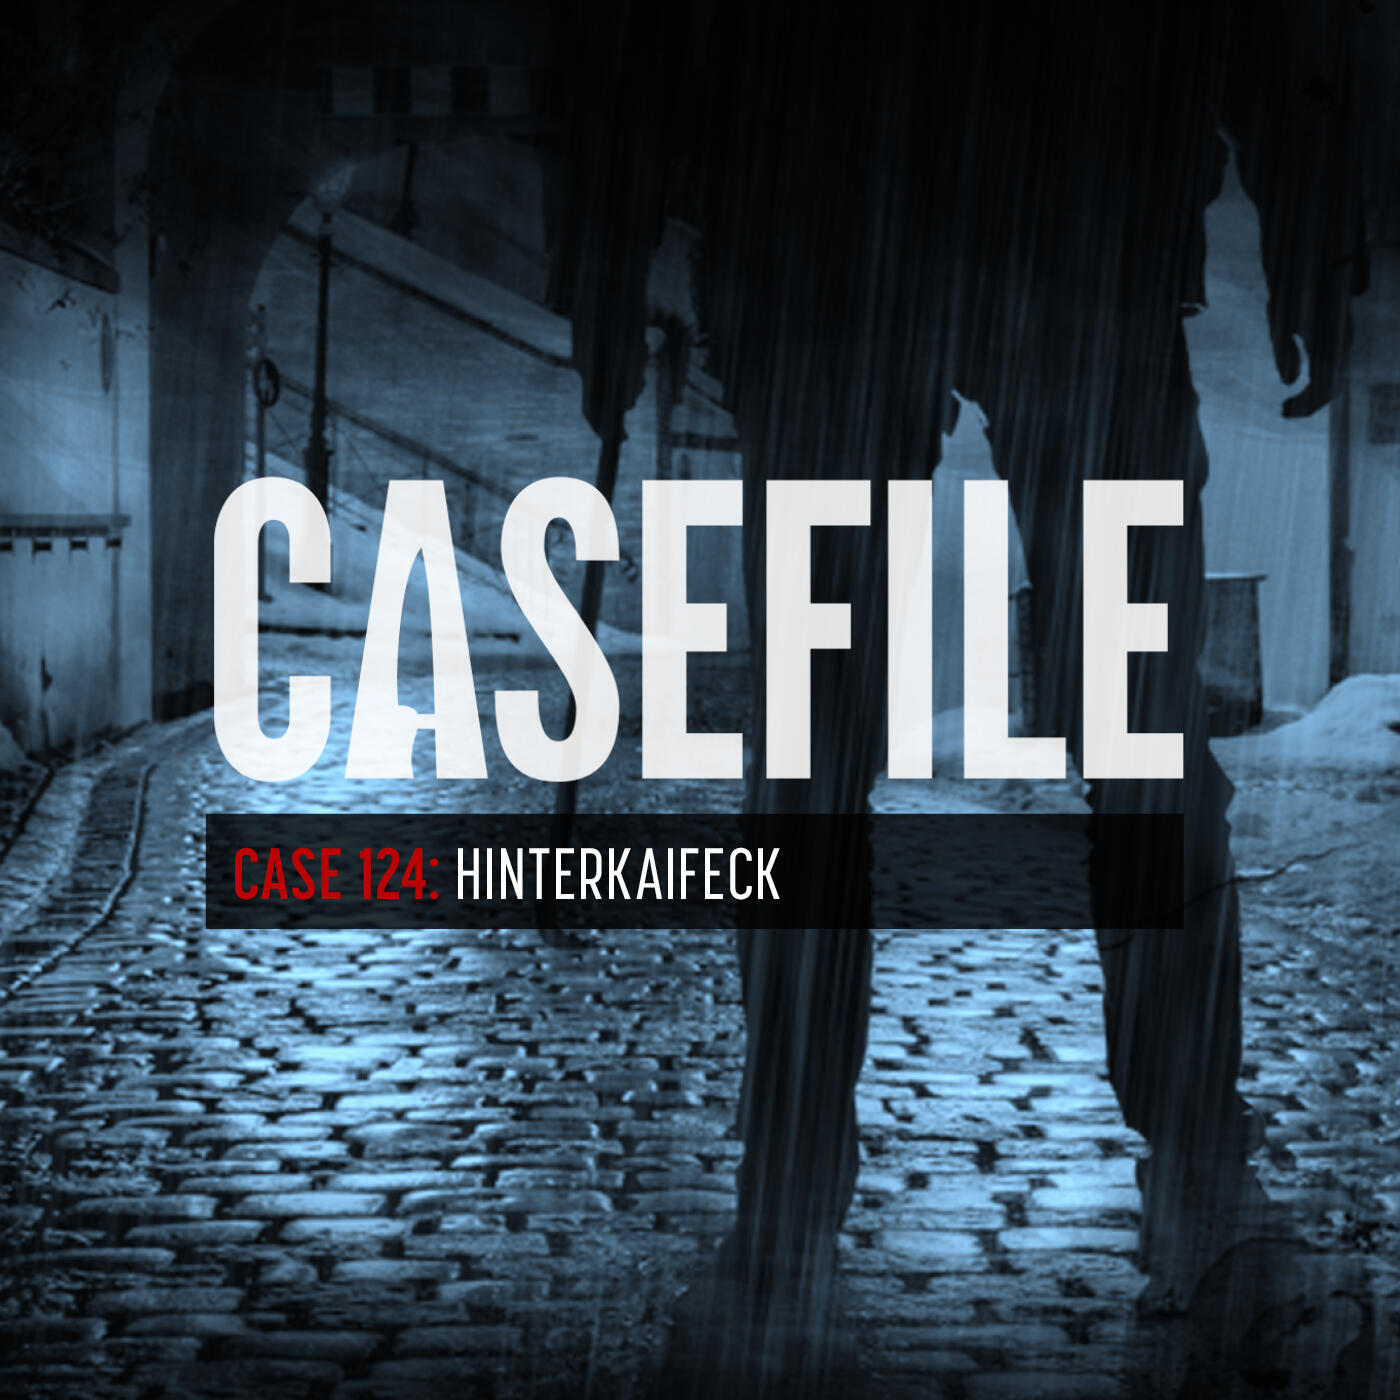 Case 124: Hinterkaifeck